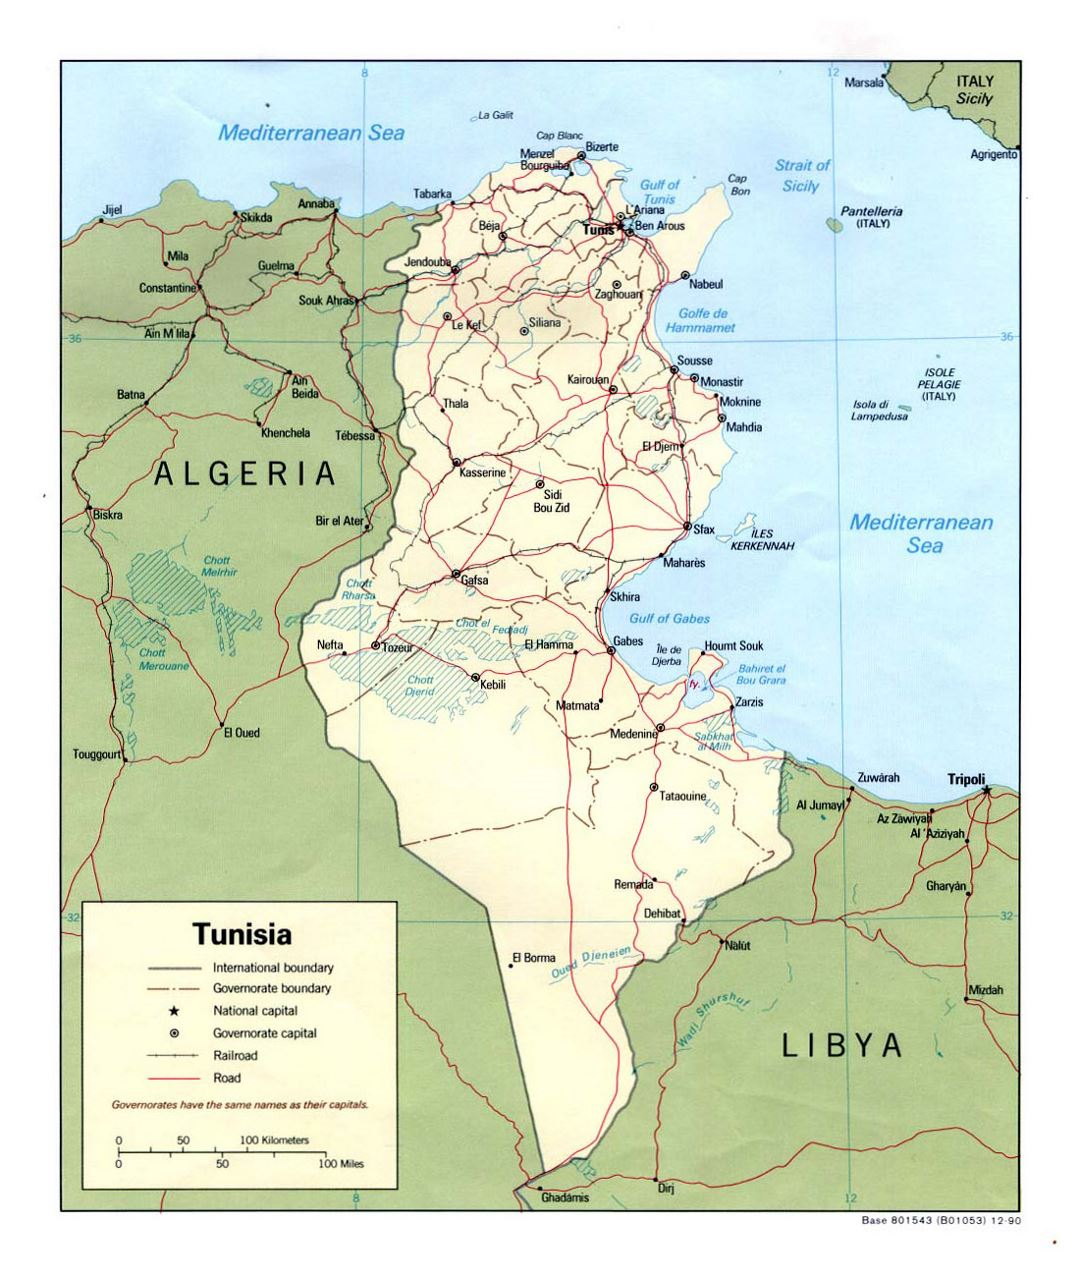 Detailed political and administrative map of Tunisia with roads, railroads and major cities - 1990